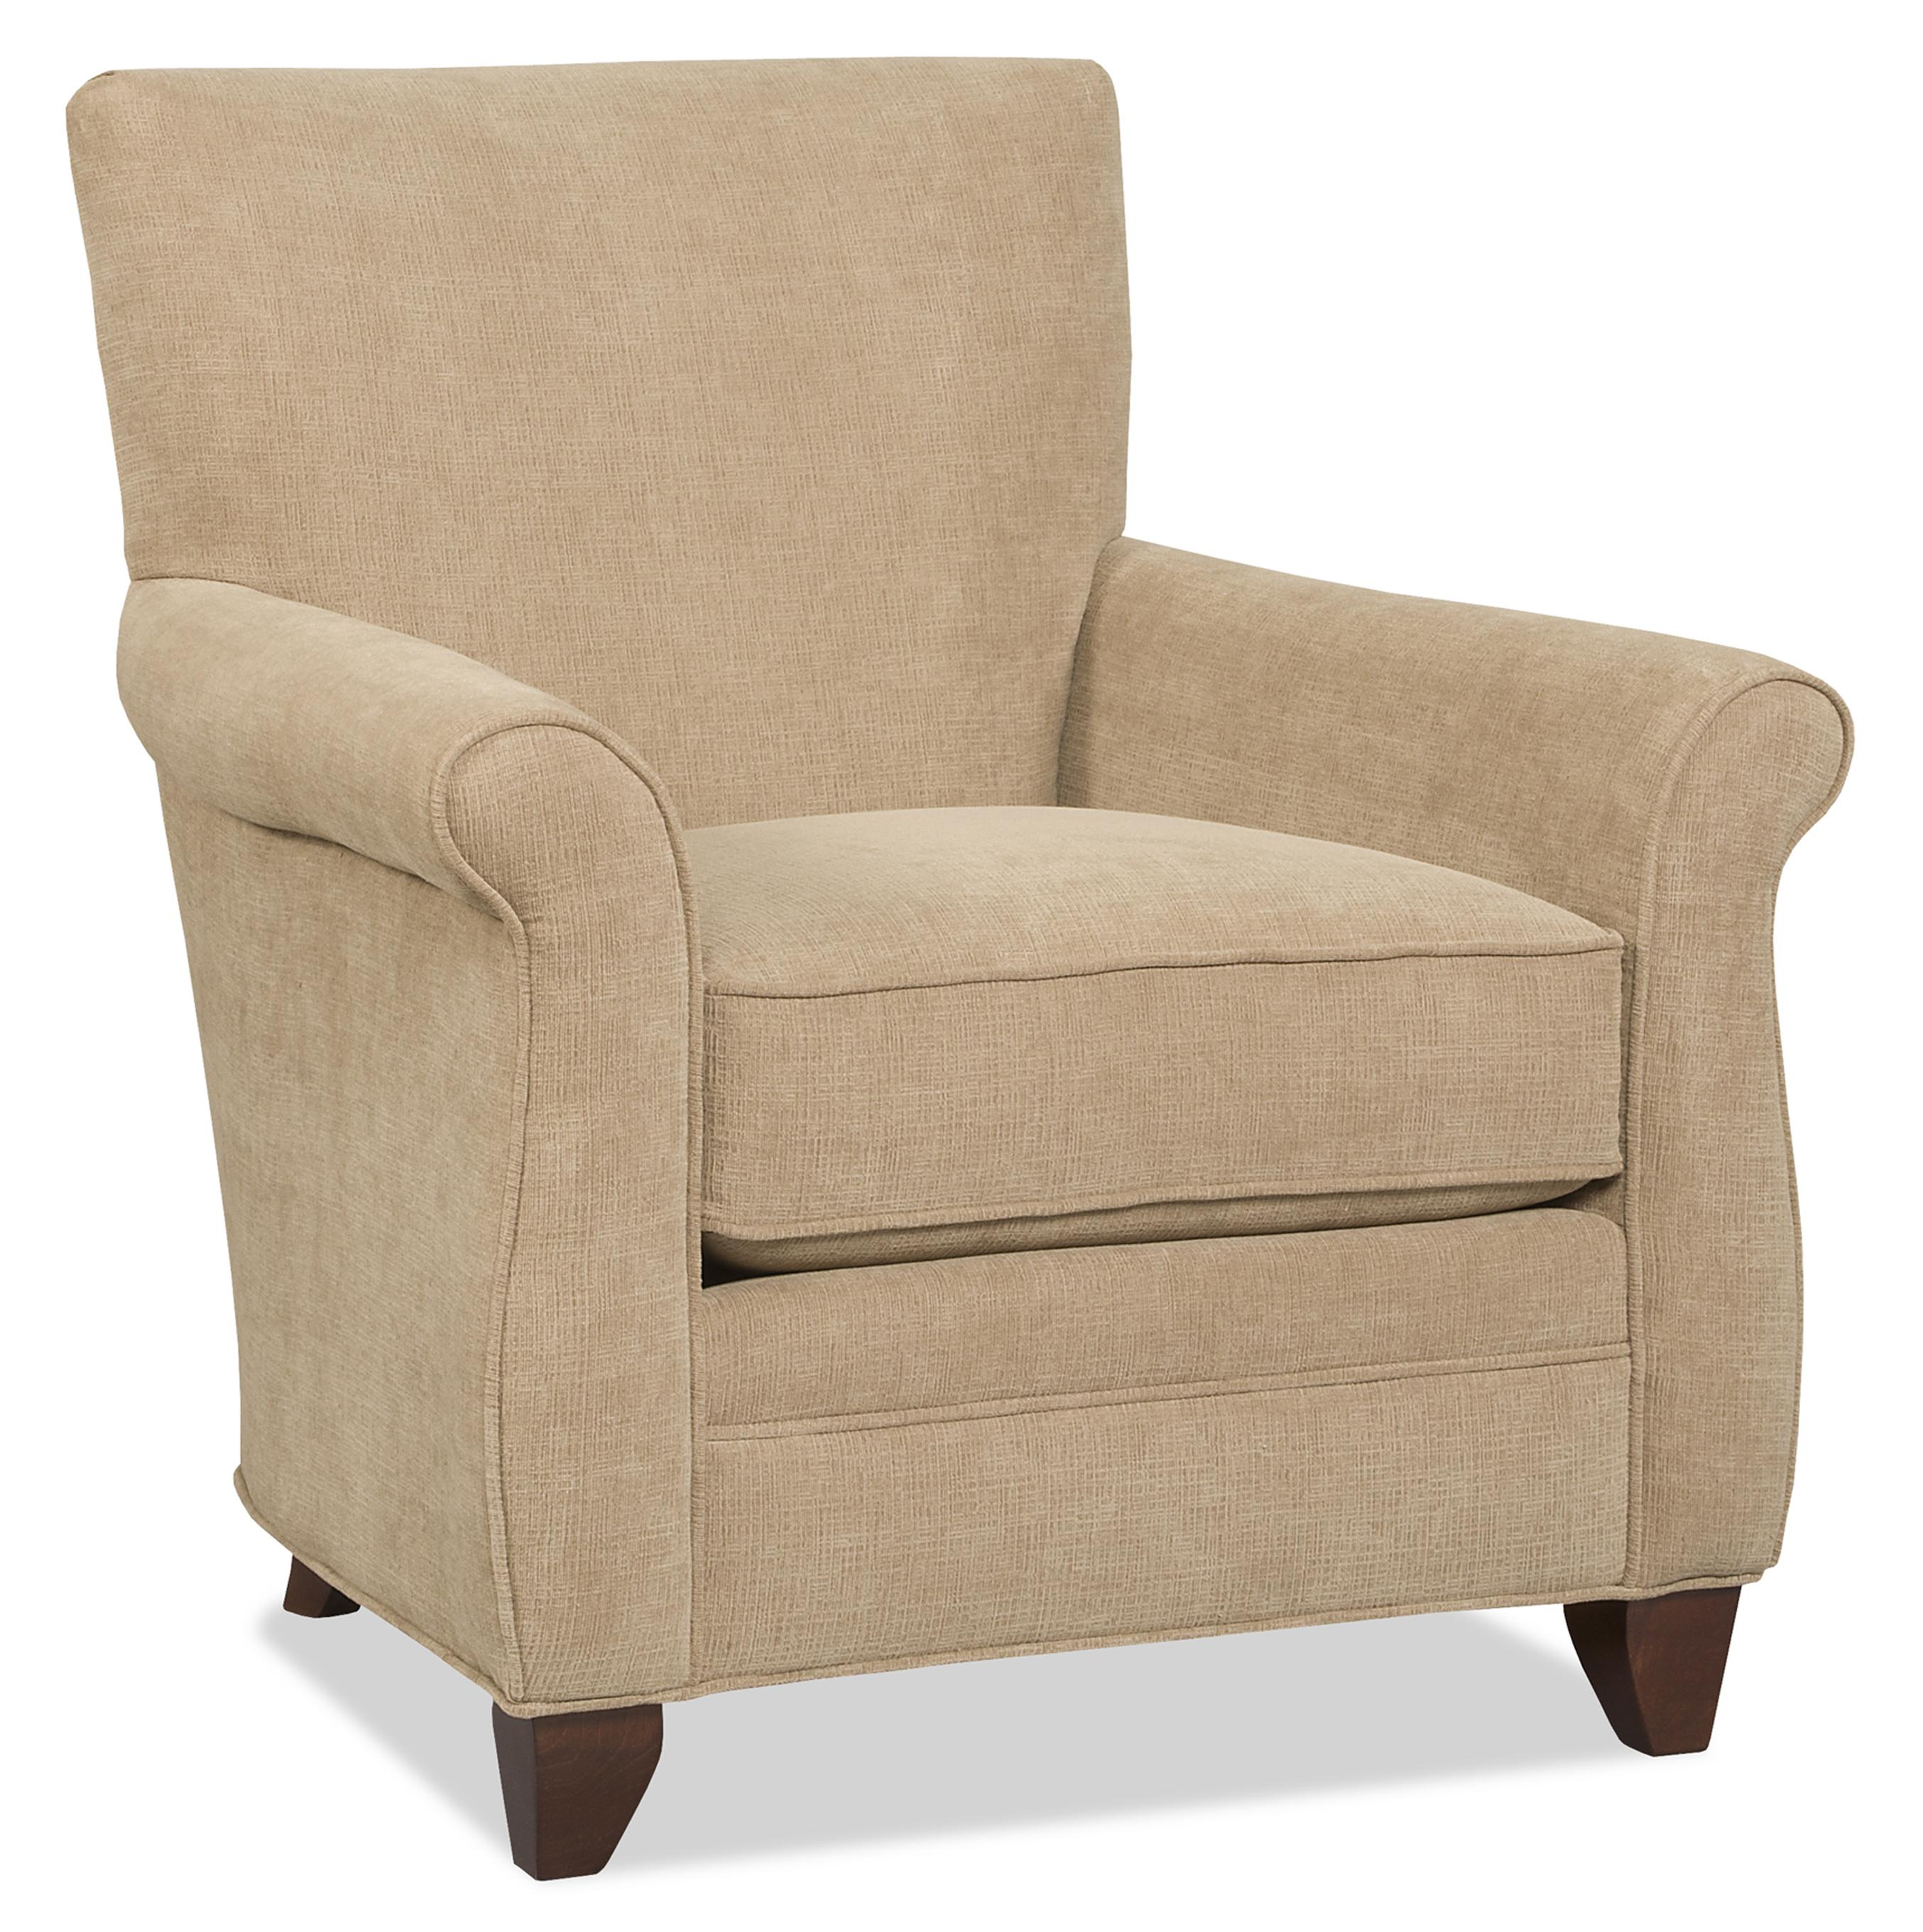 sam s club upholstered chairs chair covers ebay australia moore phoenix casual with rolled arms